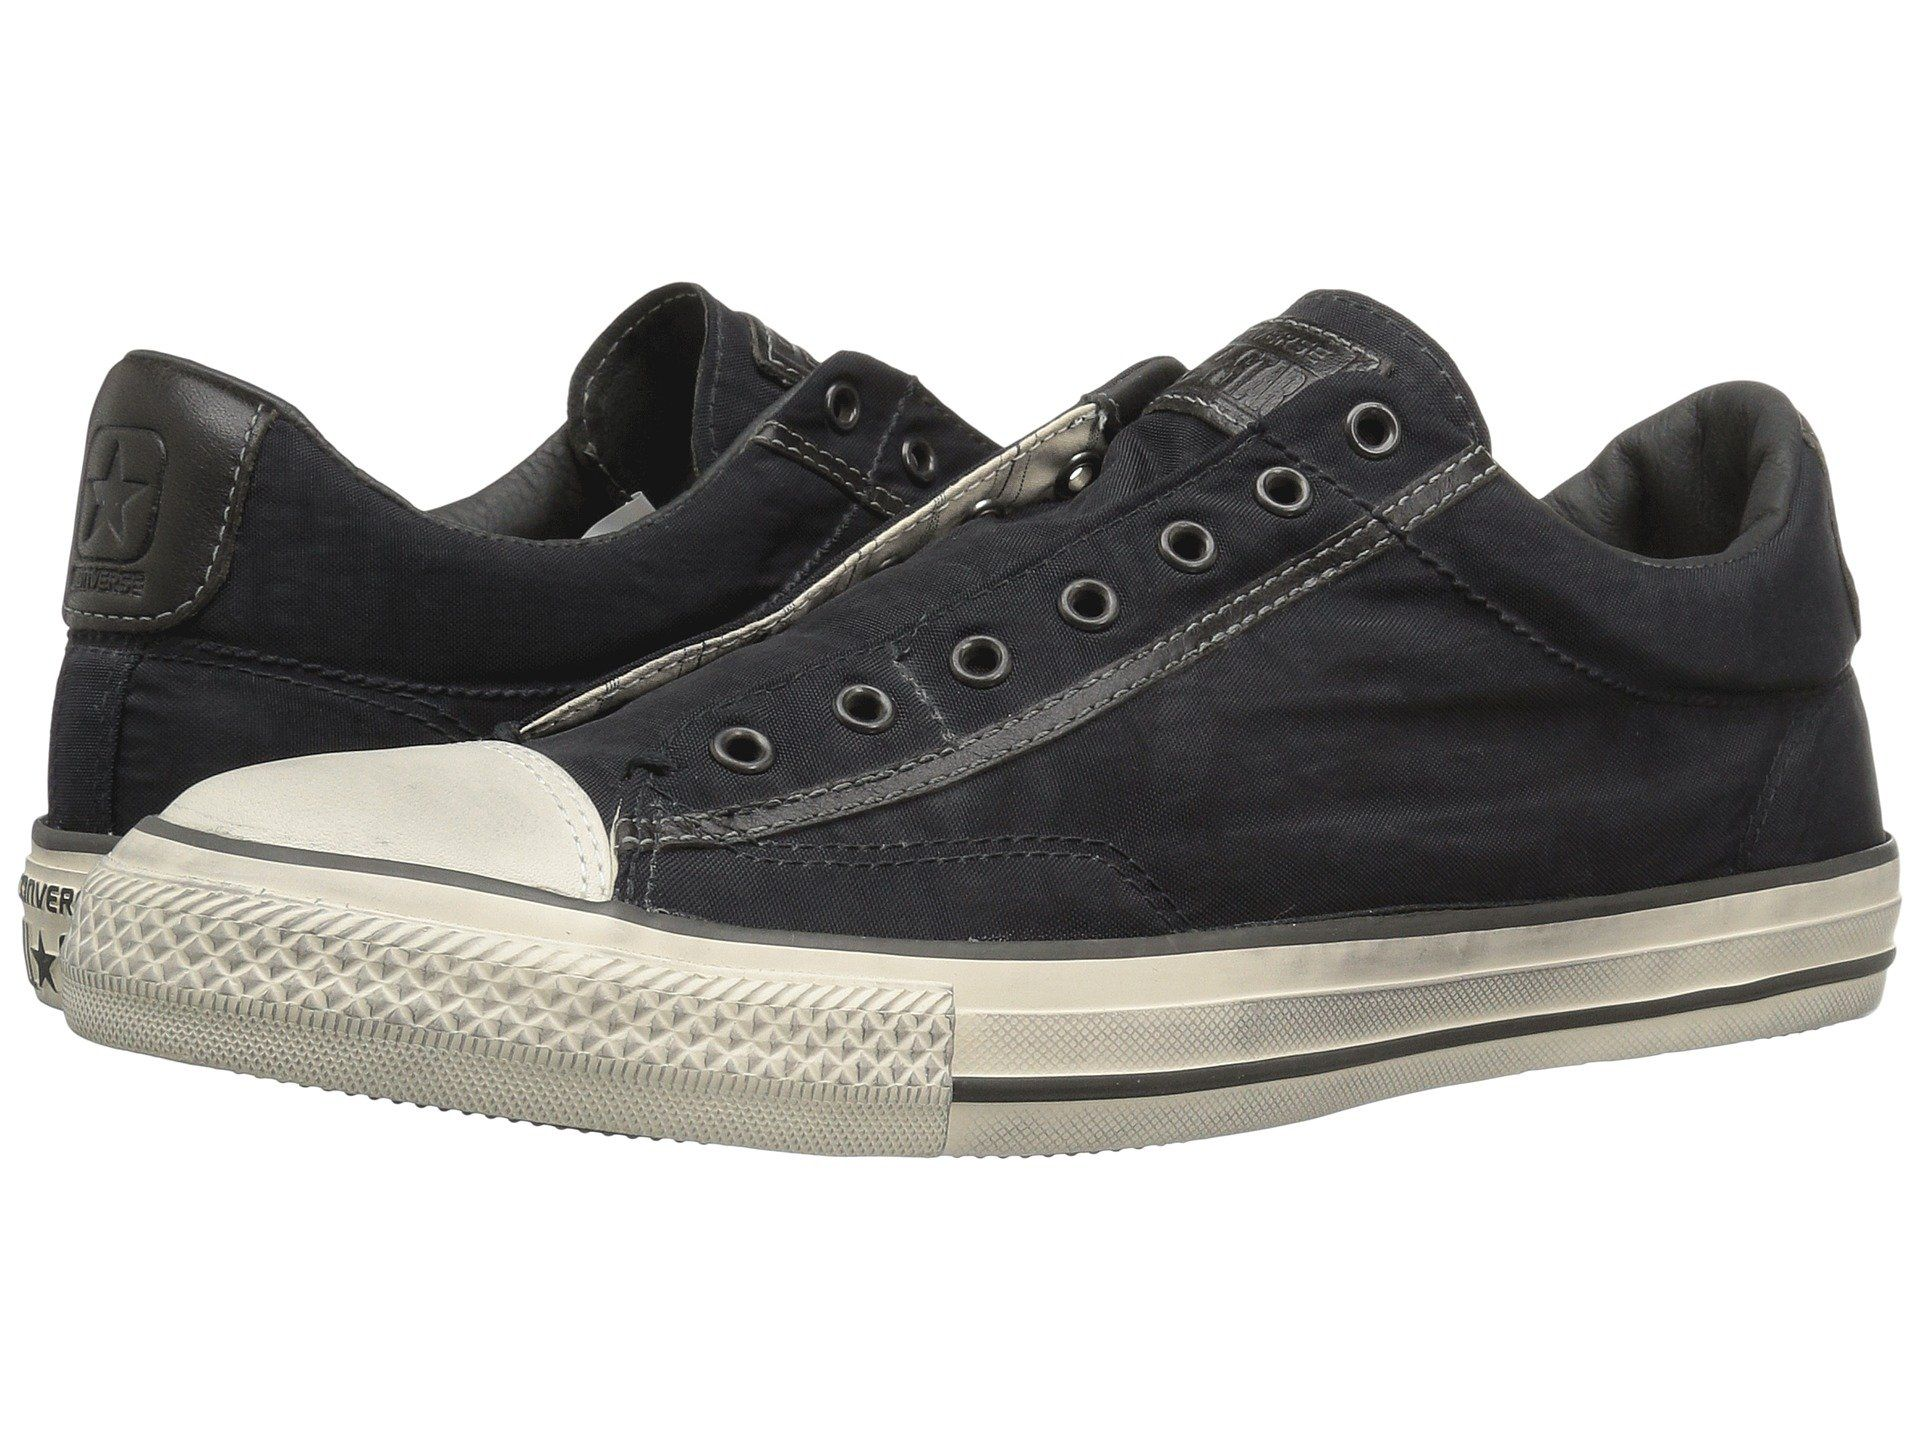 Converse By John Varvatos Chuck Taylor All Star Vintage Slip Painted Nylon  Ox Black Beluga Turtledove, Converse,